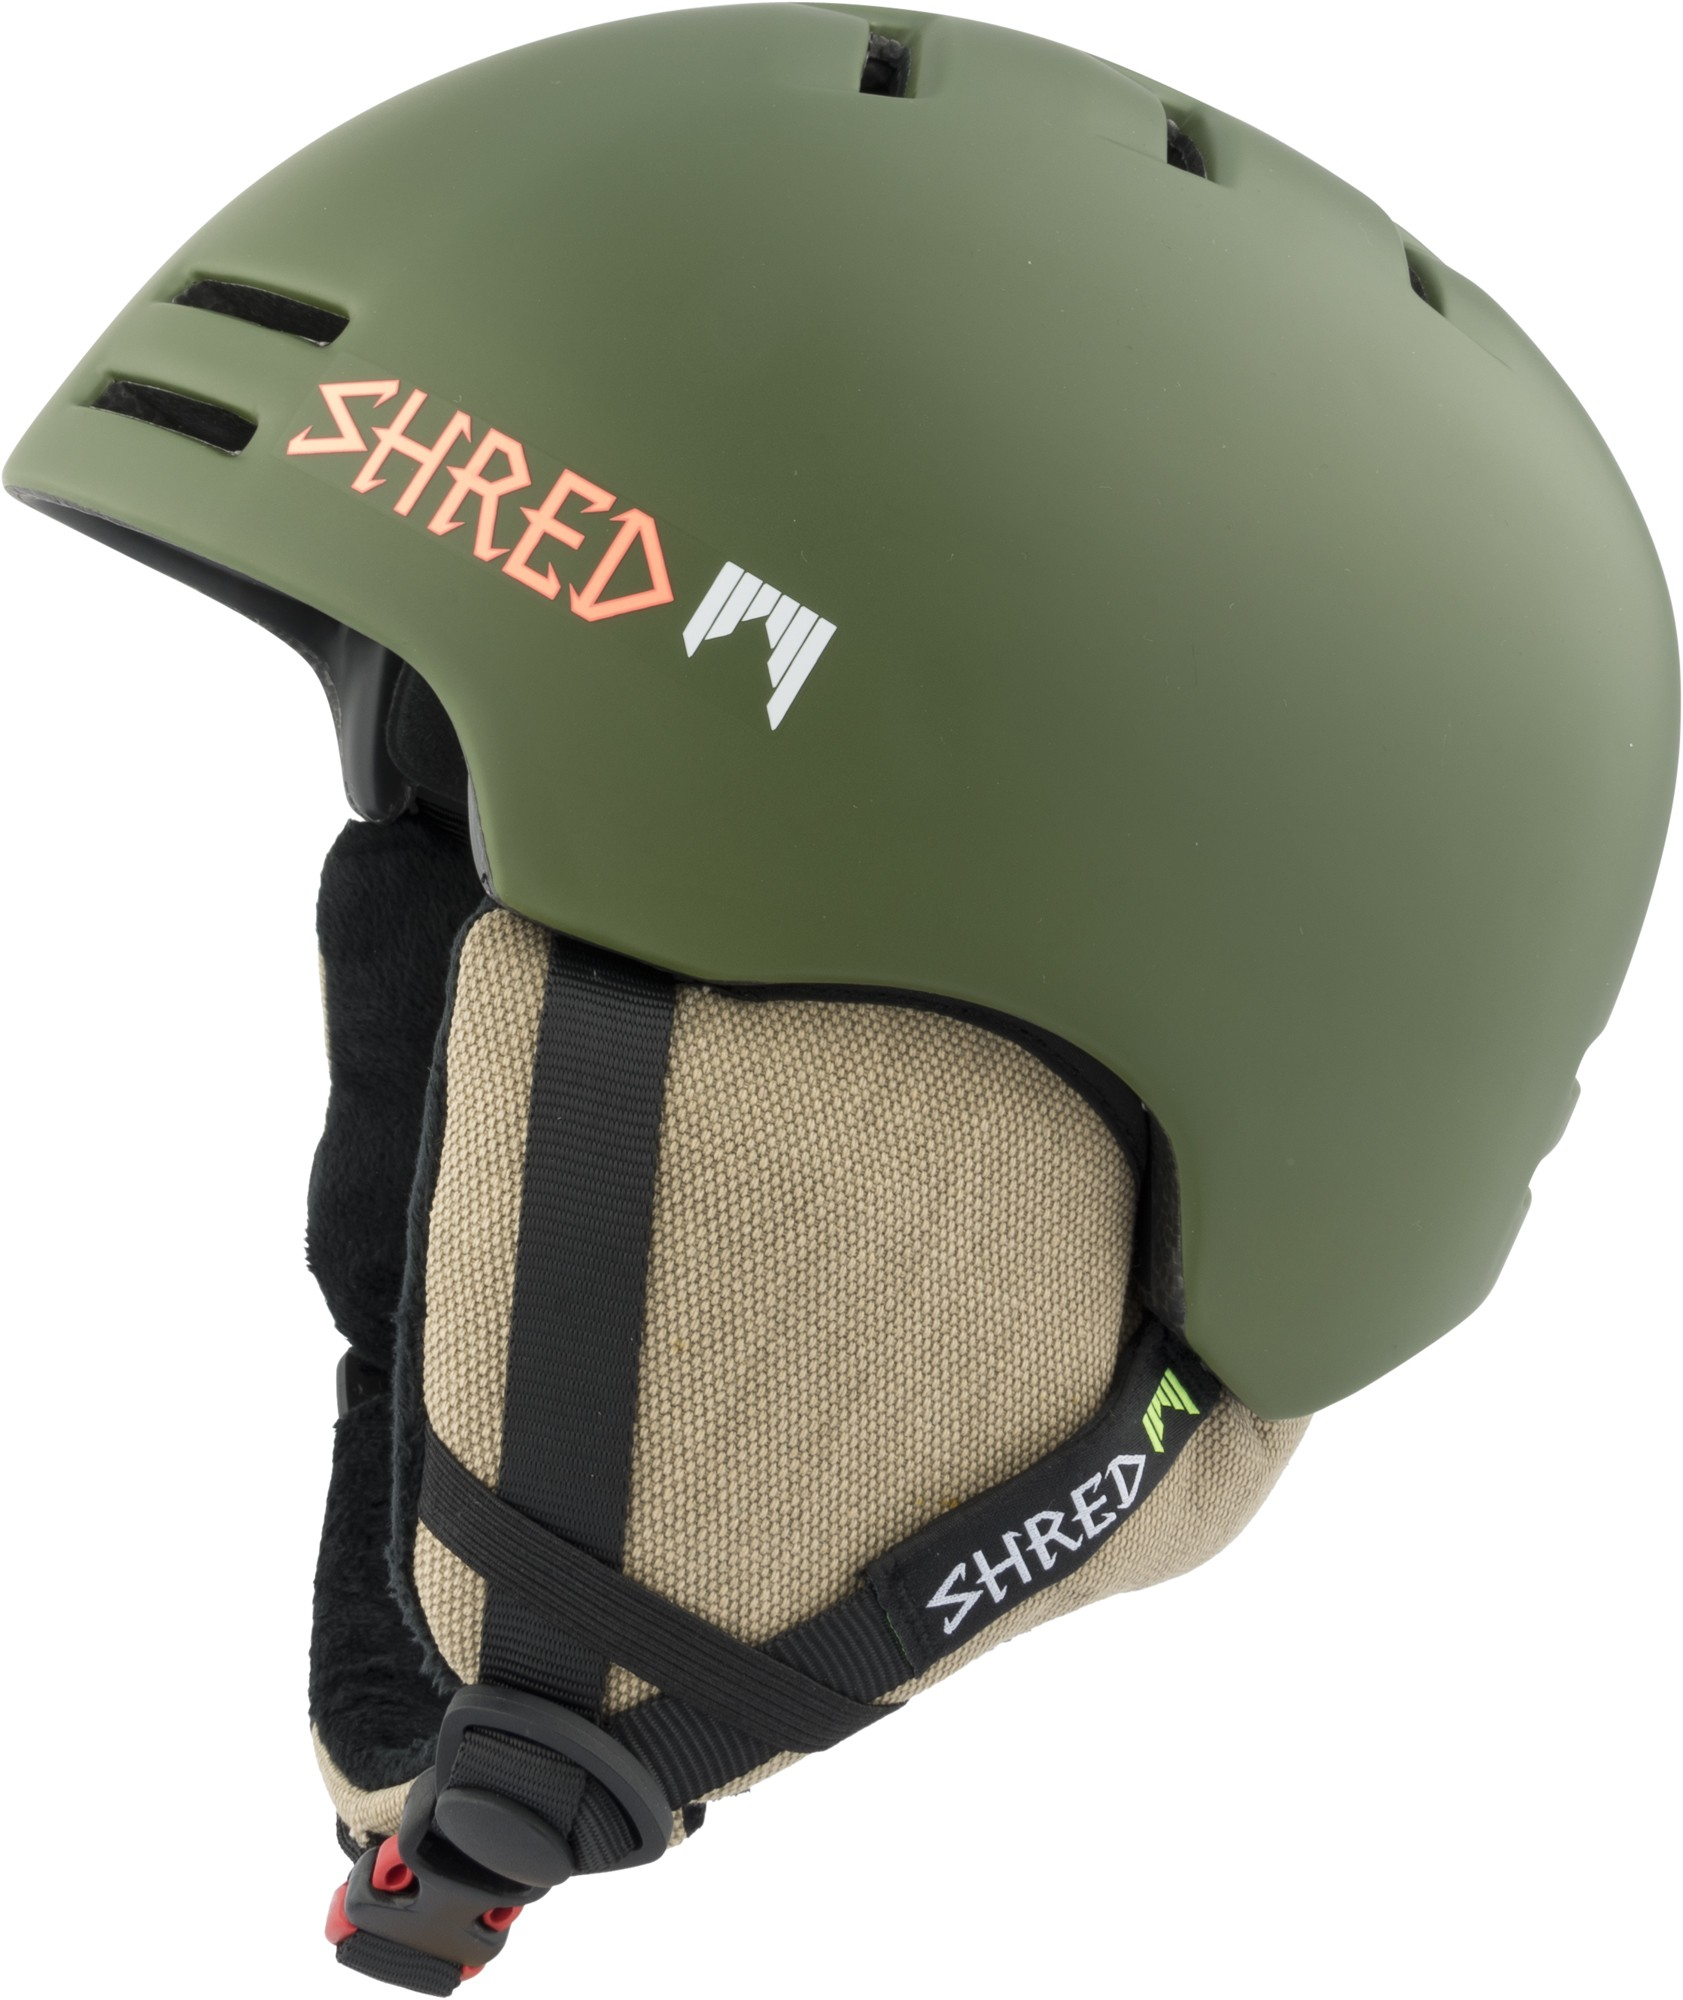 shred slam cap noseason woodland